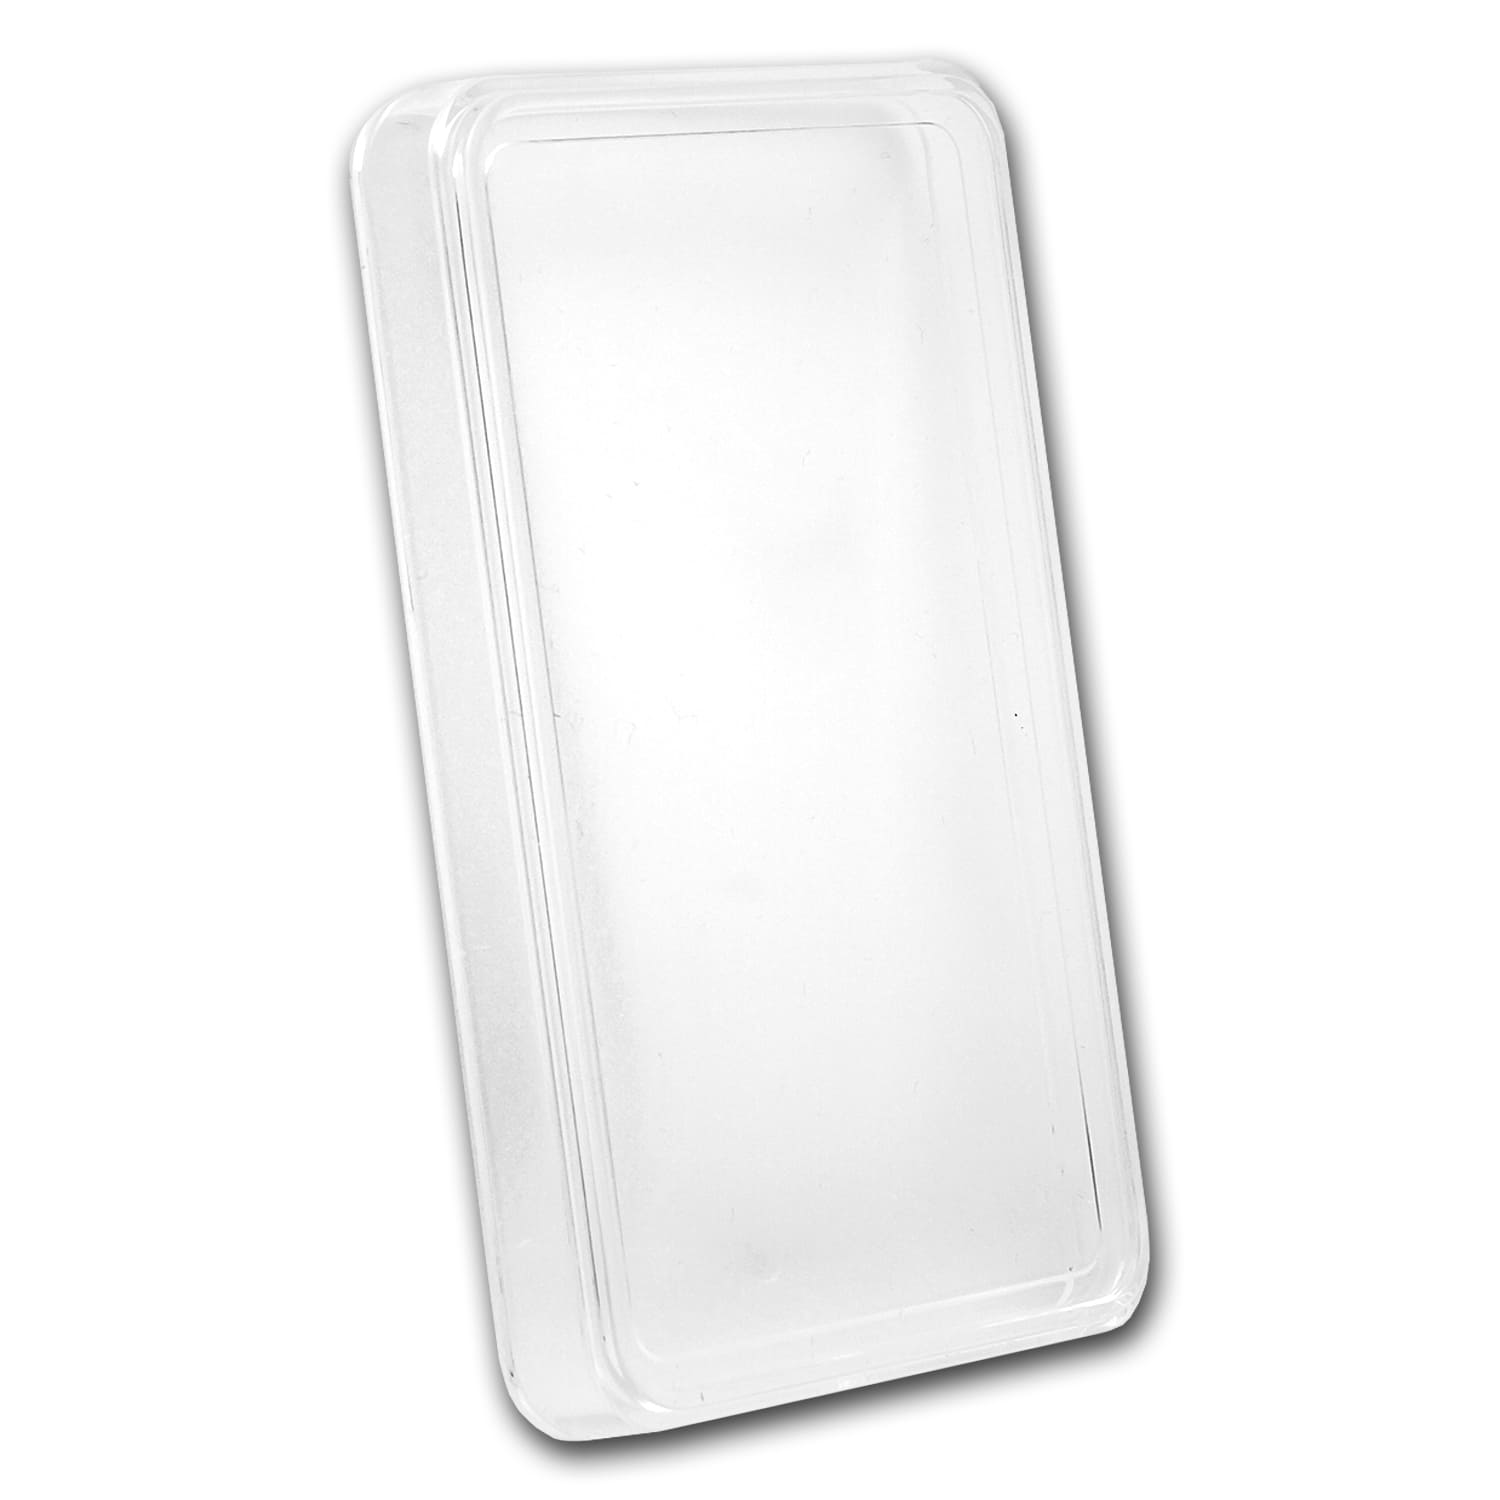 CoinSafe Acrylic Stackable Capsule - 10 oz Silver Bar